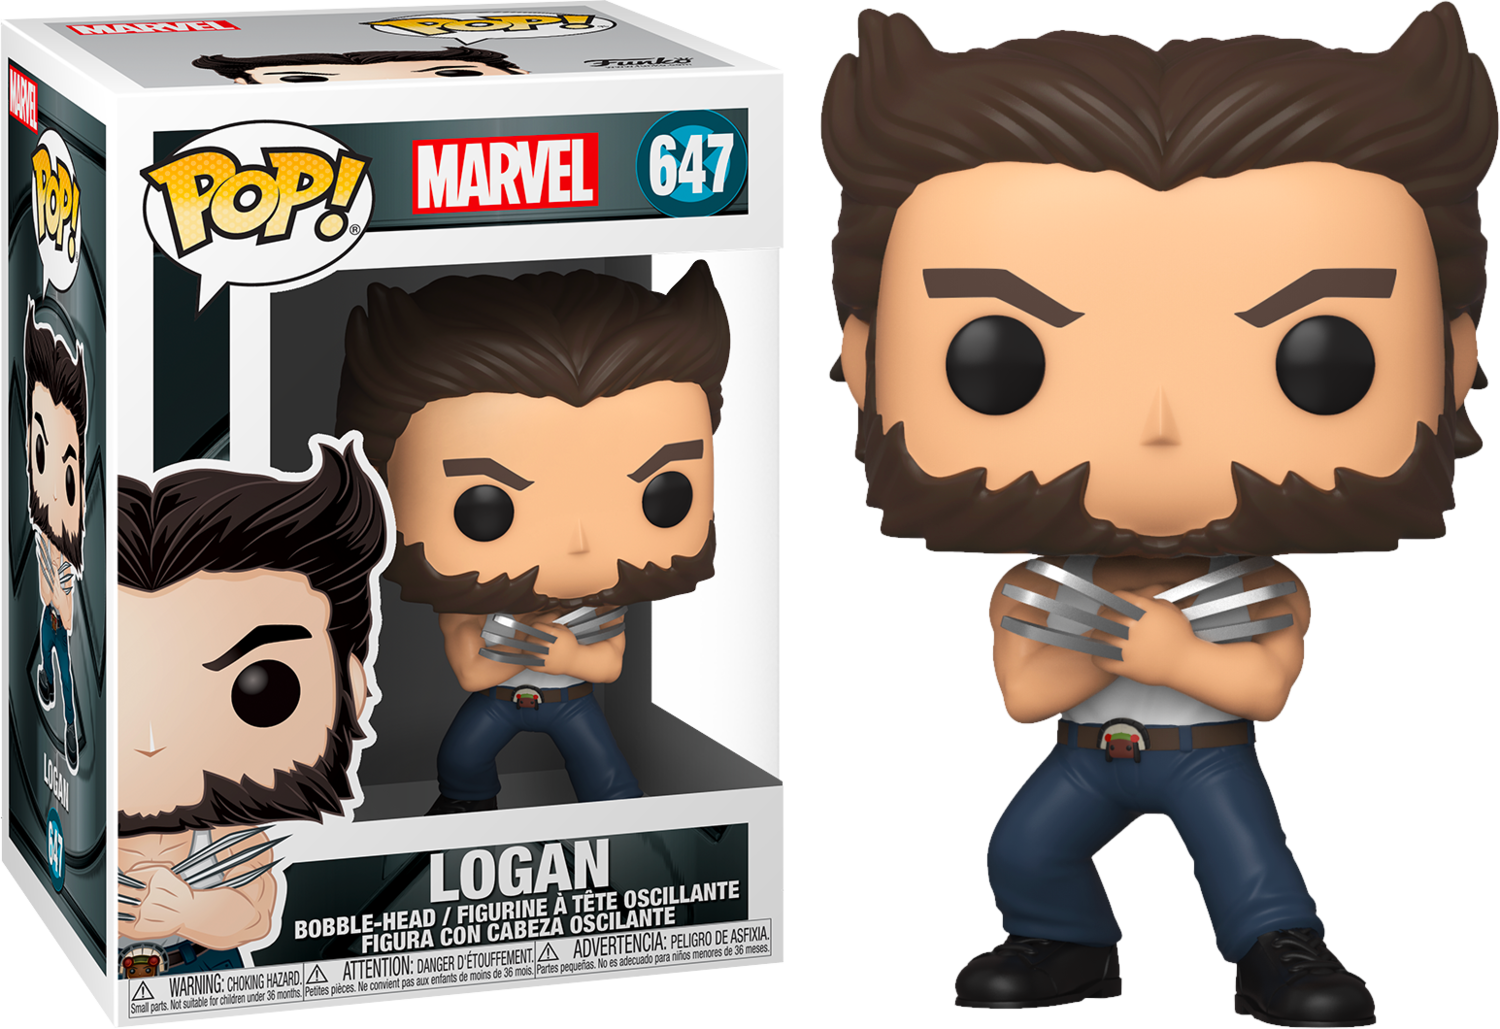 X-Men (2000) - Wolverine with Tank Top 20th Anniversary Pop! Vinyl Figure